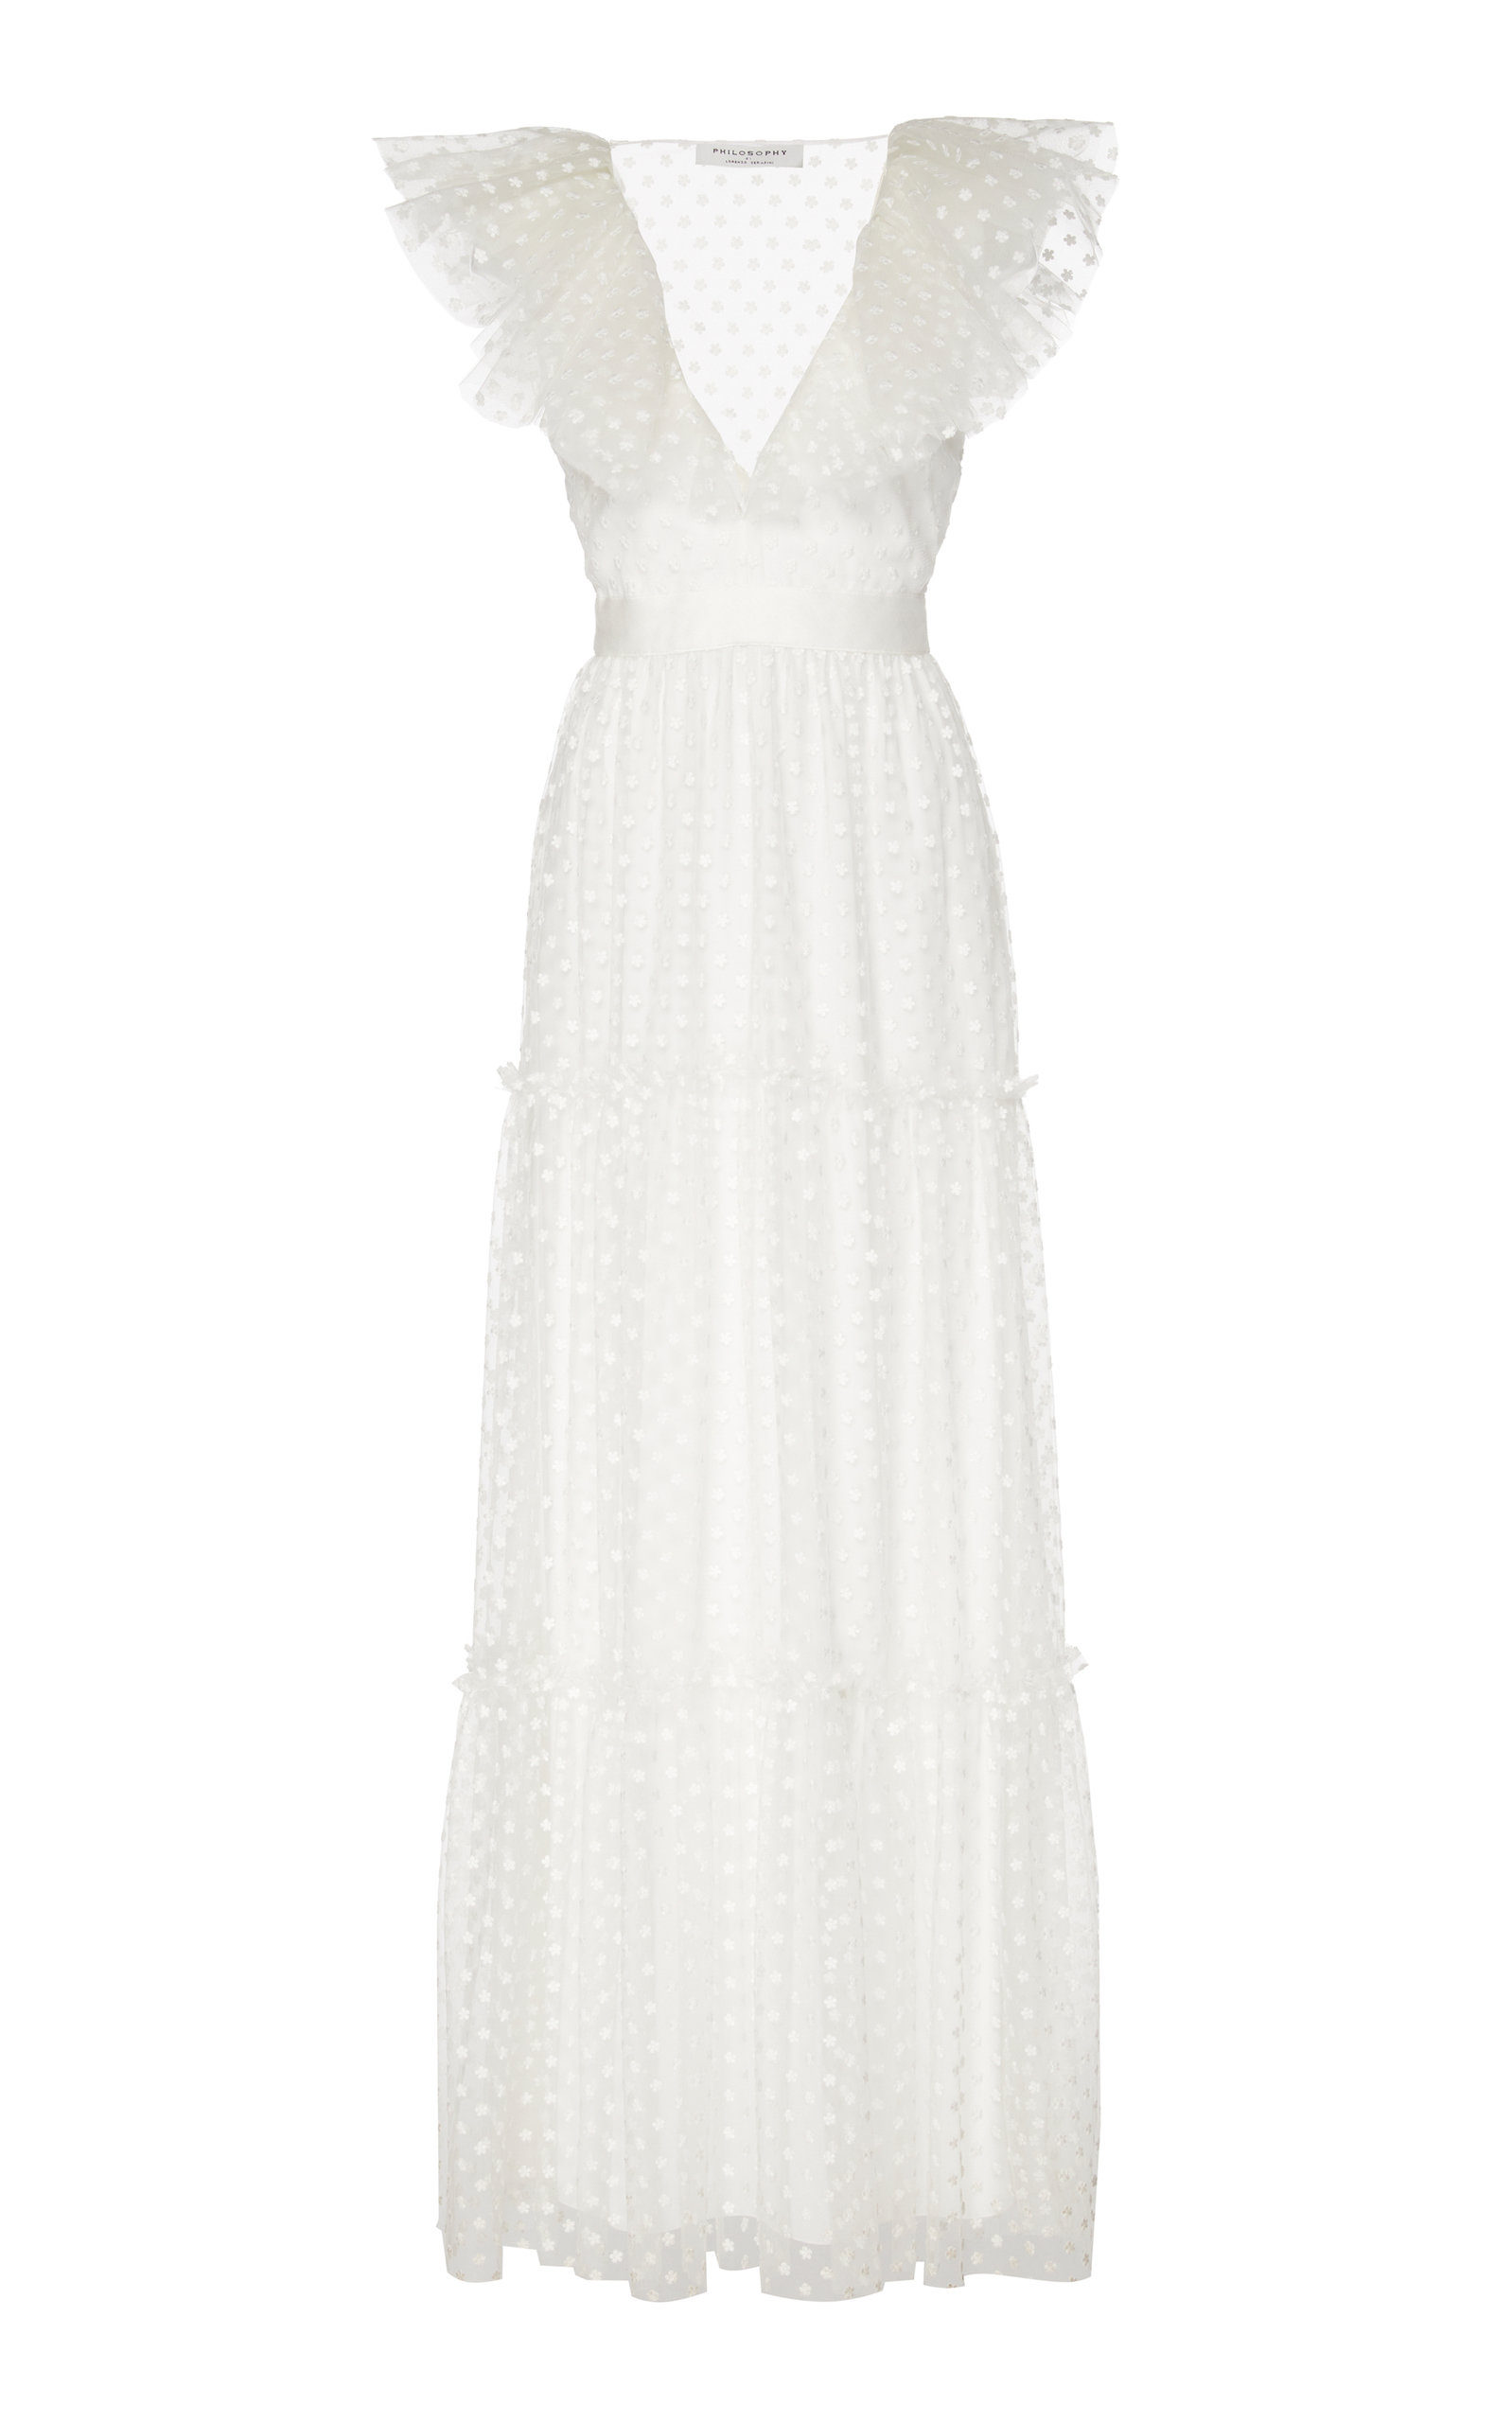 Buy Philosophy di Lorenzo Serafini Ruffled Polka-Dot Flocked Tulle Maxi Dr online, shop Philosophy di Lorenzo Serafini at the best price